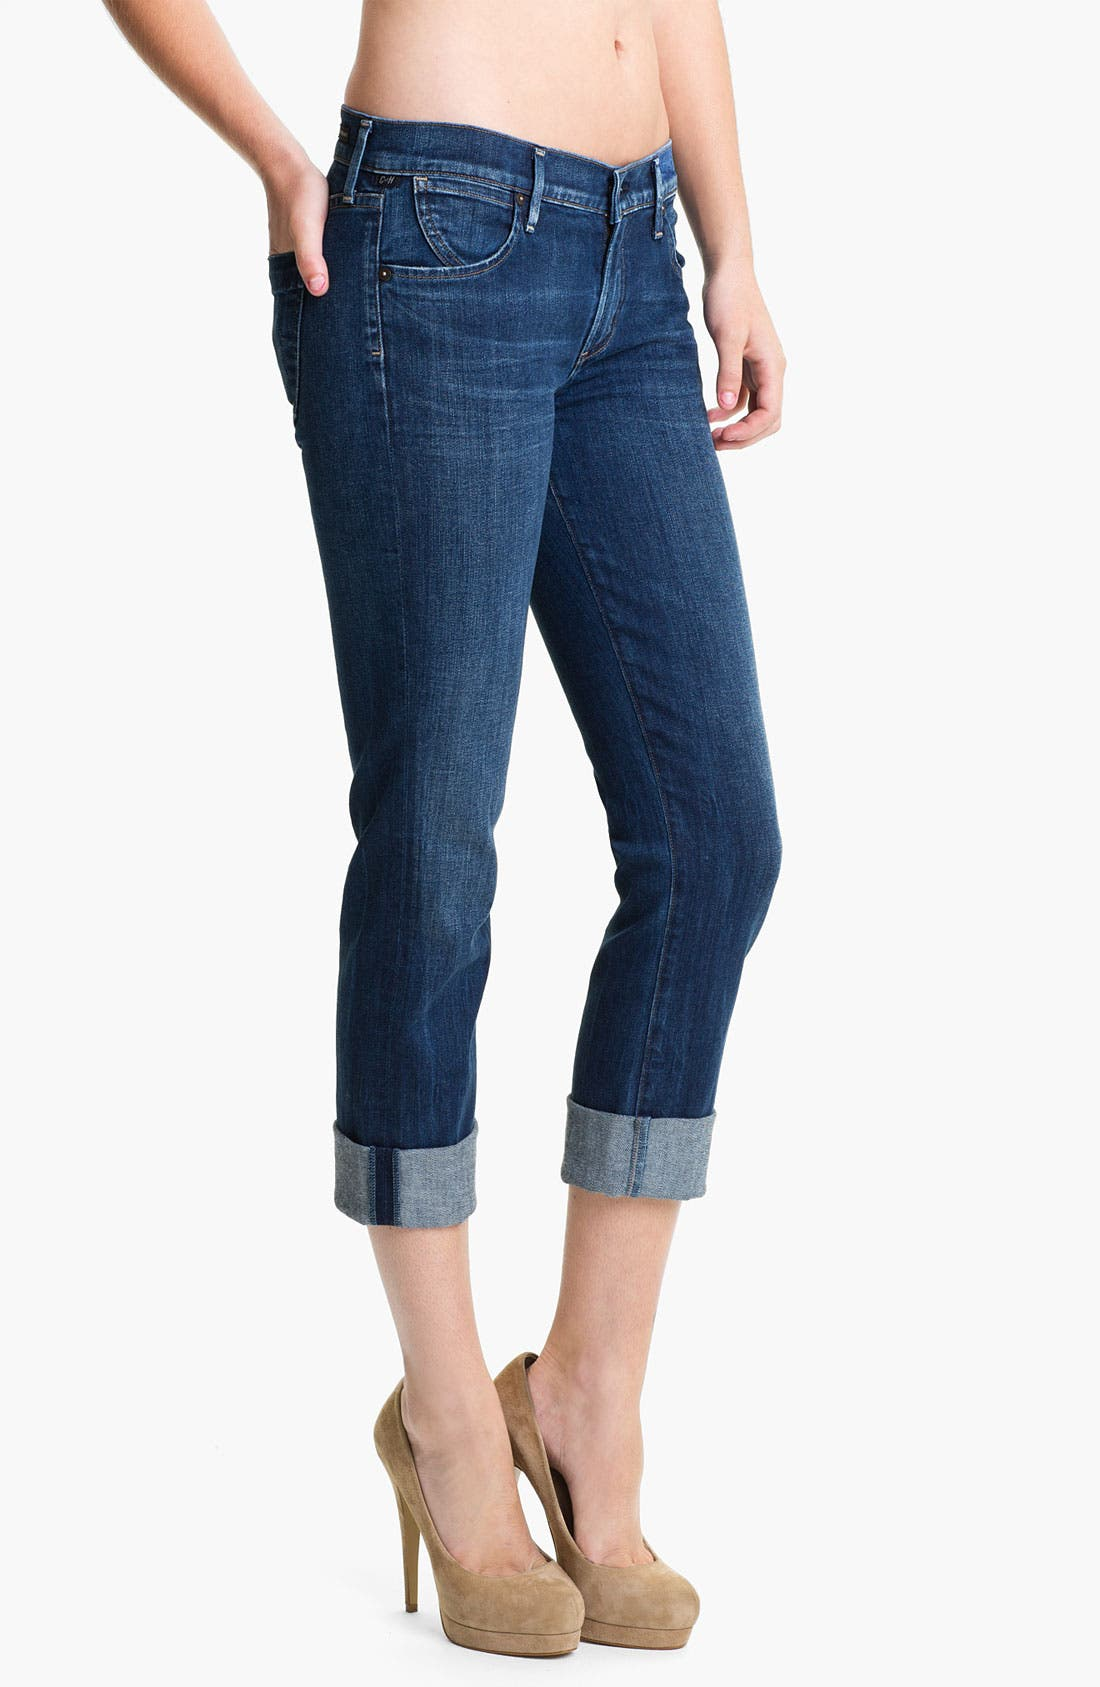 Alternate Image 1 Selected - Citizens of Humanity 'Dani' Skinny Crop Jeans (Envy Navy)